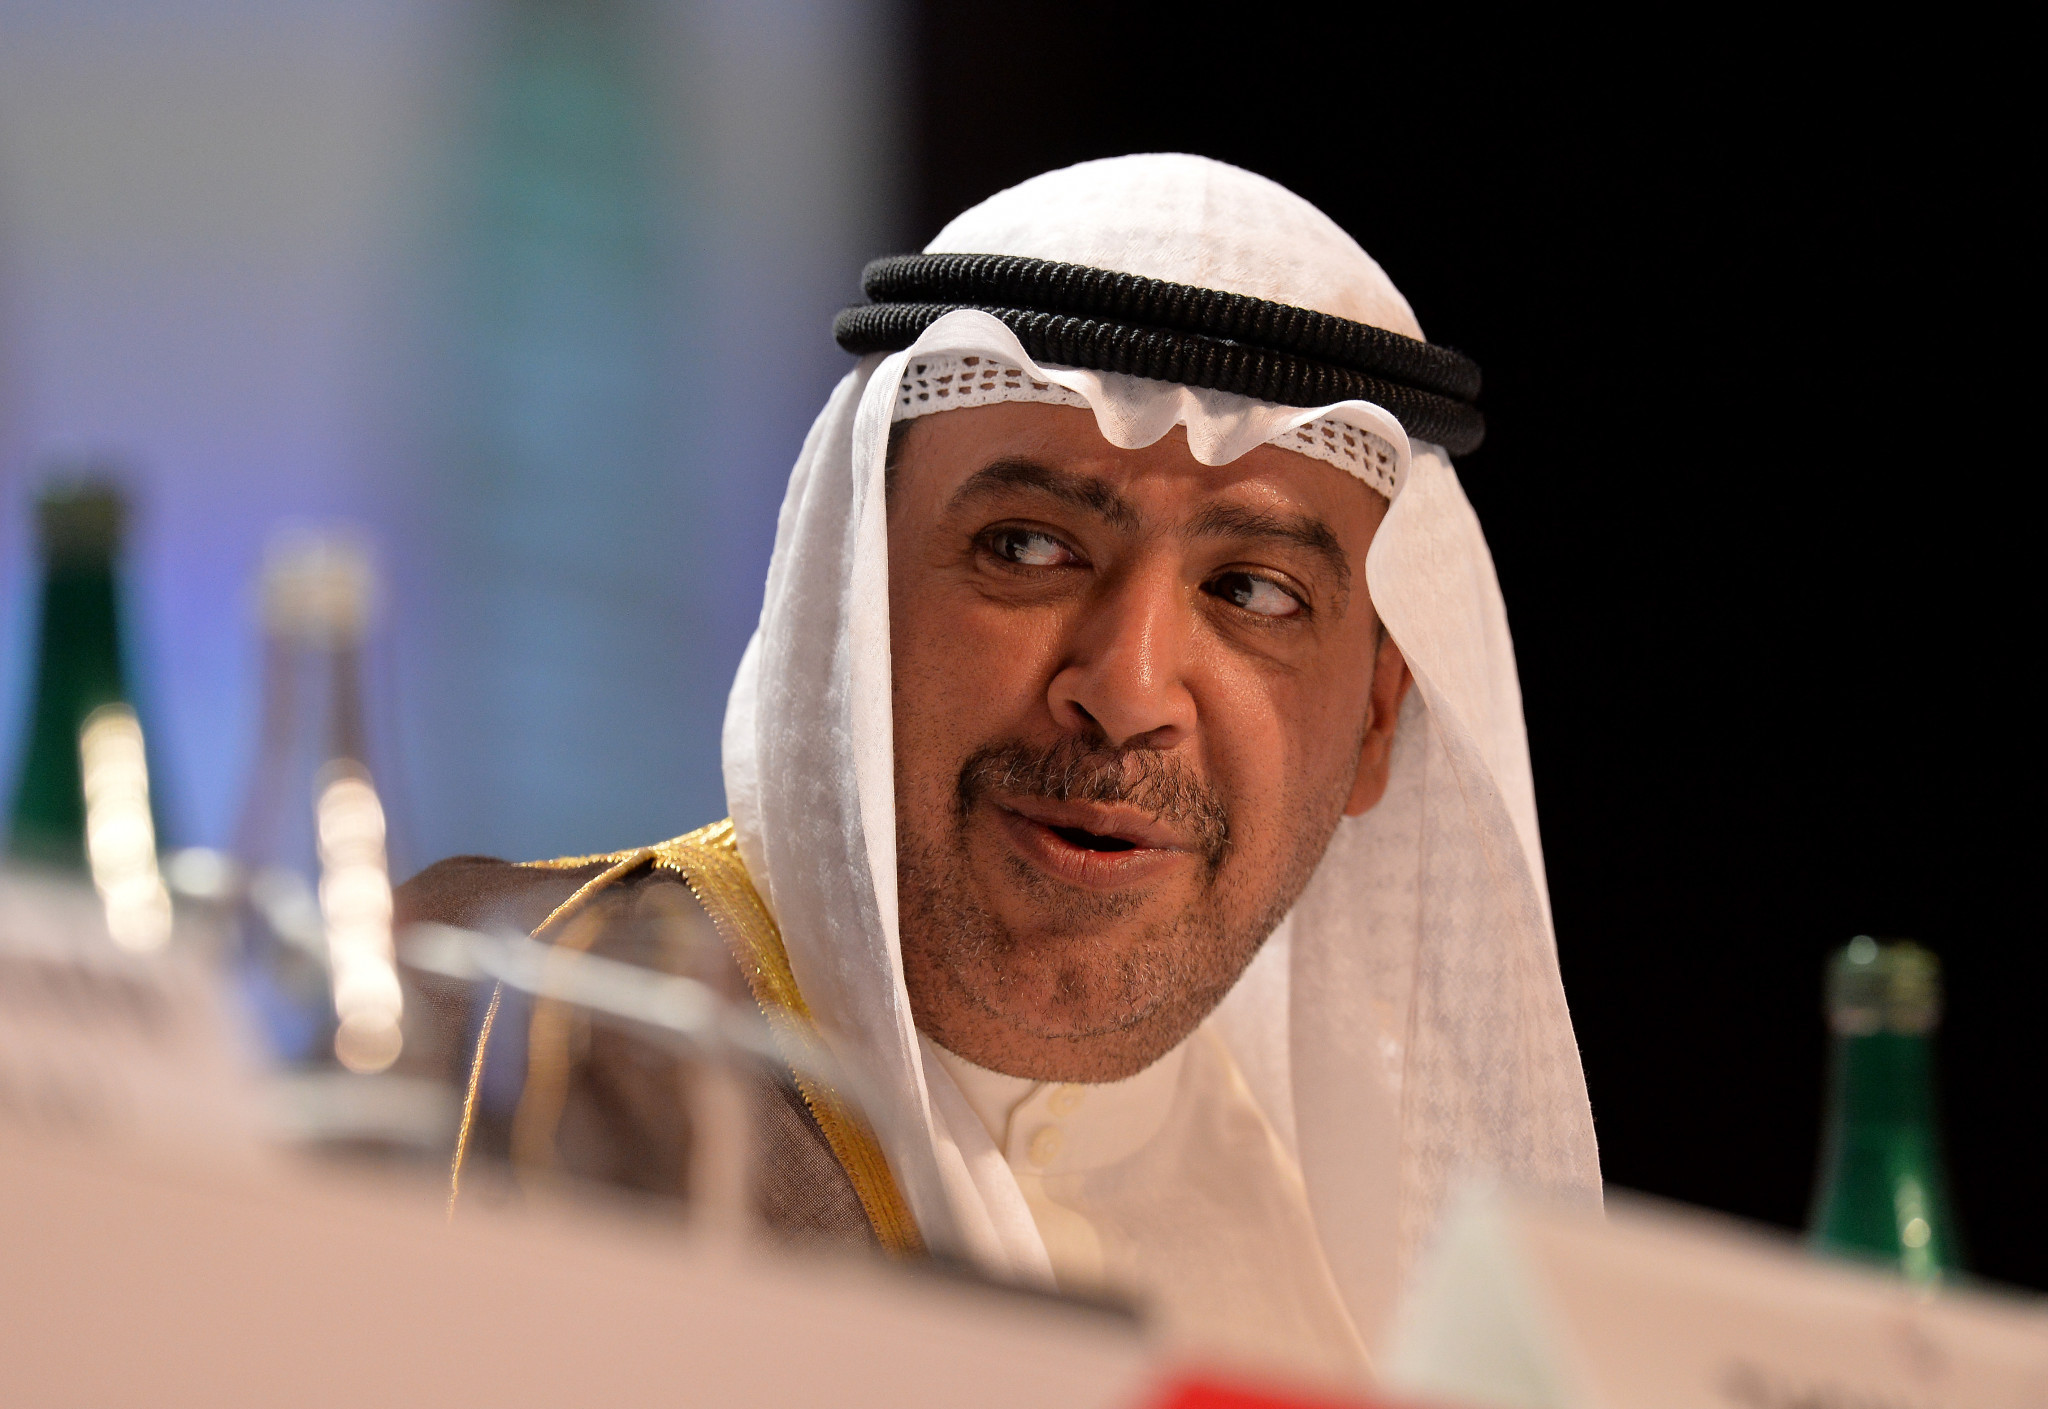 OCA President Sheikh Ahmad Al-Fahad Al-Sabah warned yesterday that the growth in popularity of esports cannot be ignored ©Getty Images